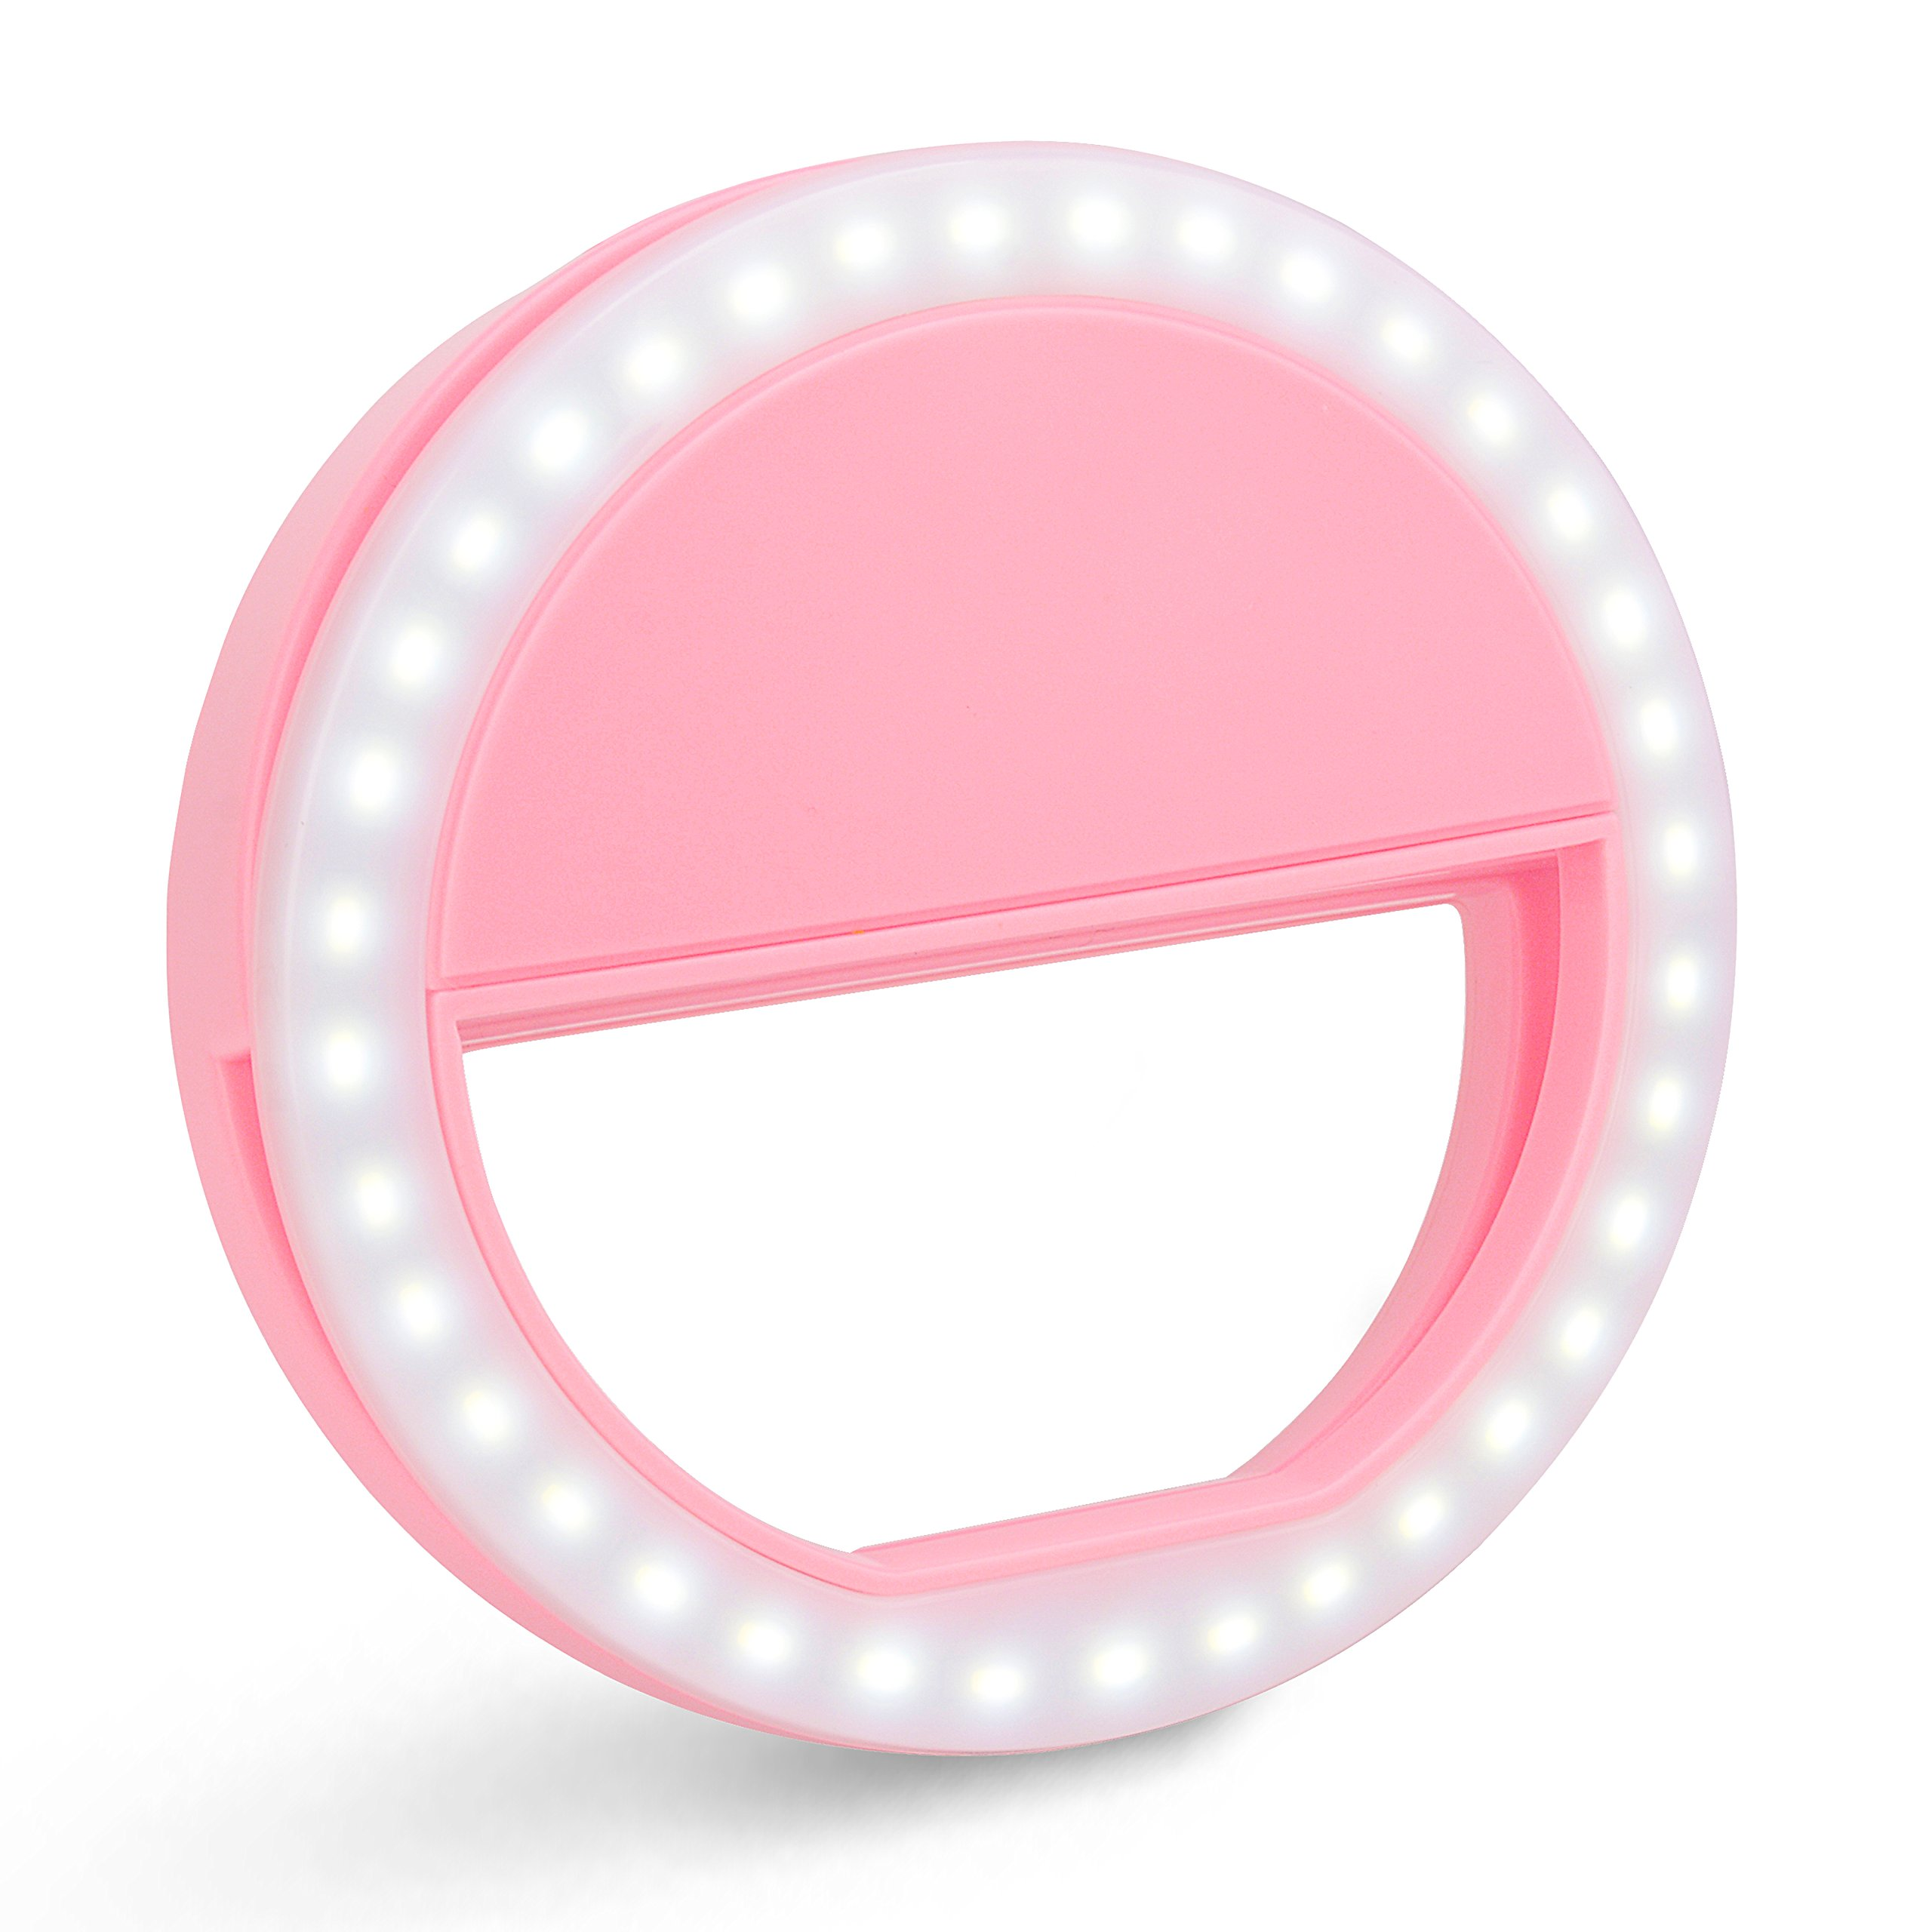 Selfie Ring Light With 36 LED Bulbs, ZOMEI SG04 Flash Lamp Clip Ring Lights Fill-in Lighting Portable for Phone/Tablet/ iPad/Laptop Camera with usb cable- Pink